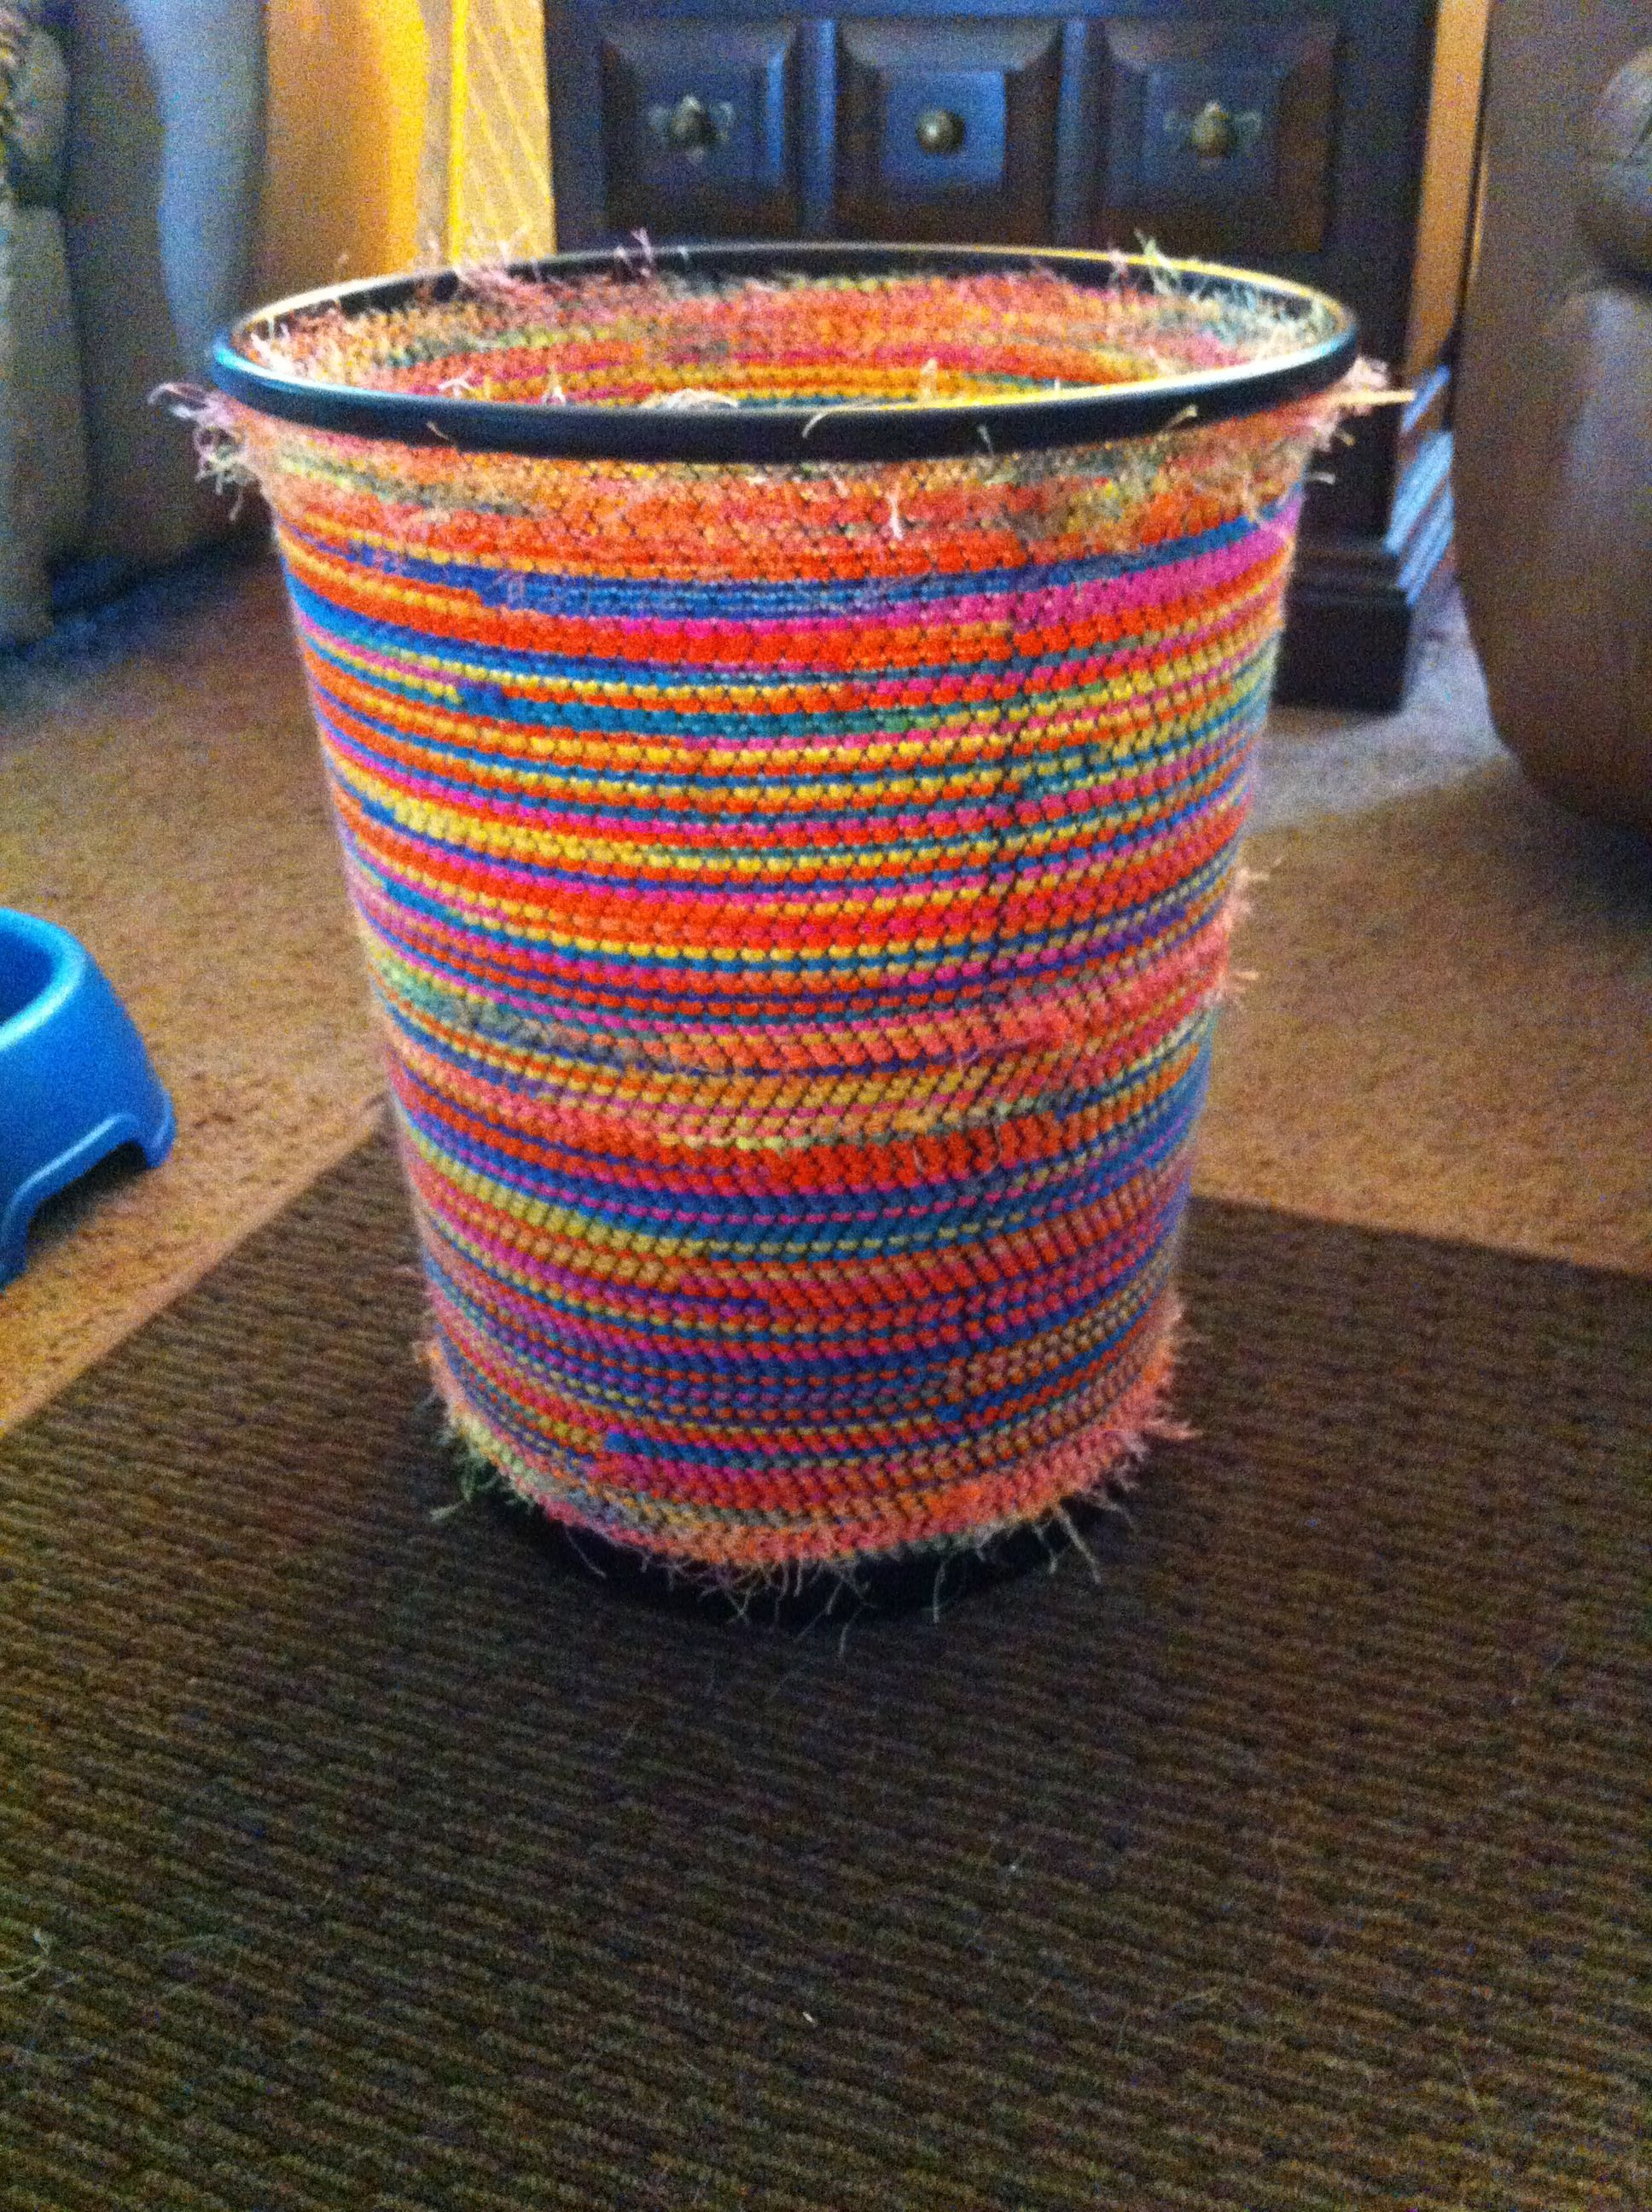 Halfway Homemade Trash Can Bought A Mesh Trash Can From